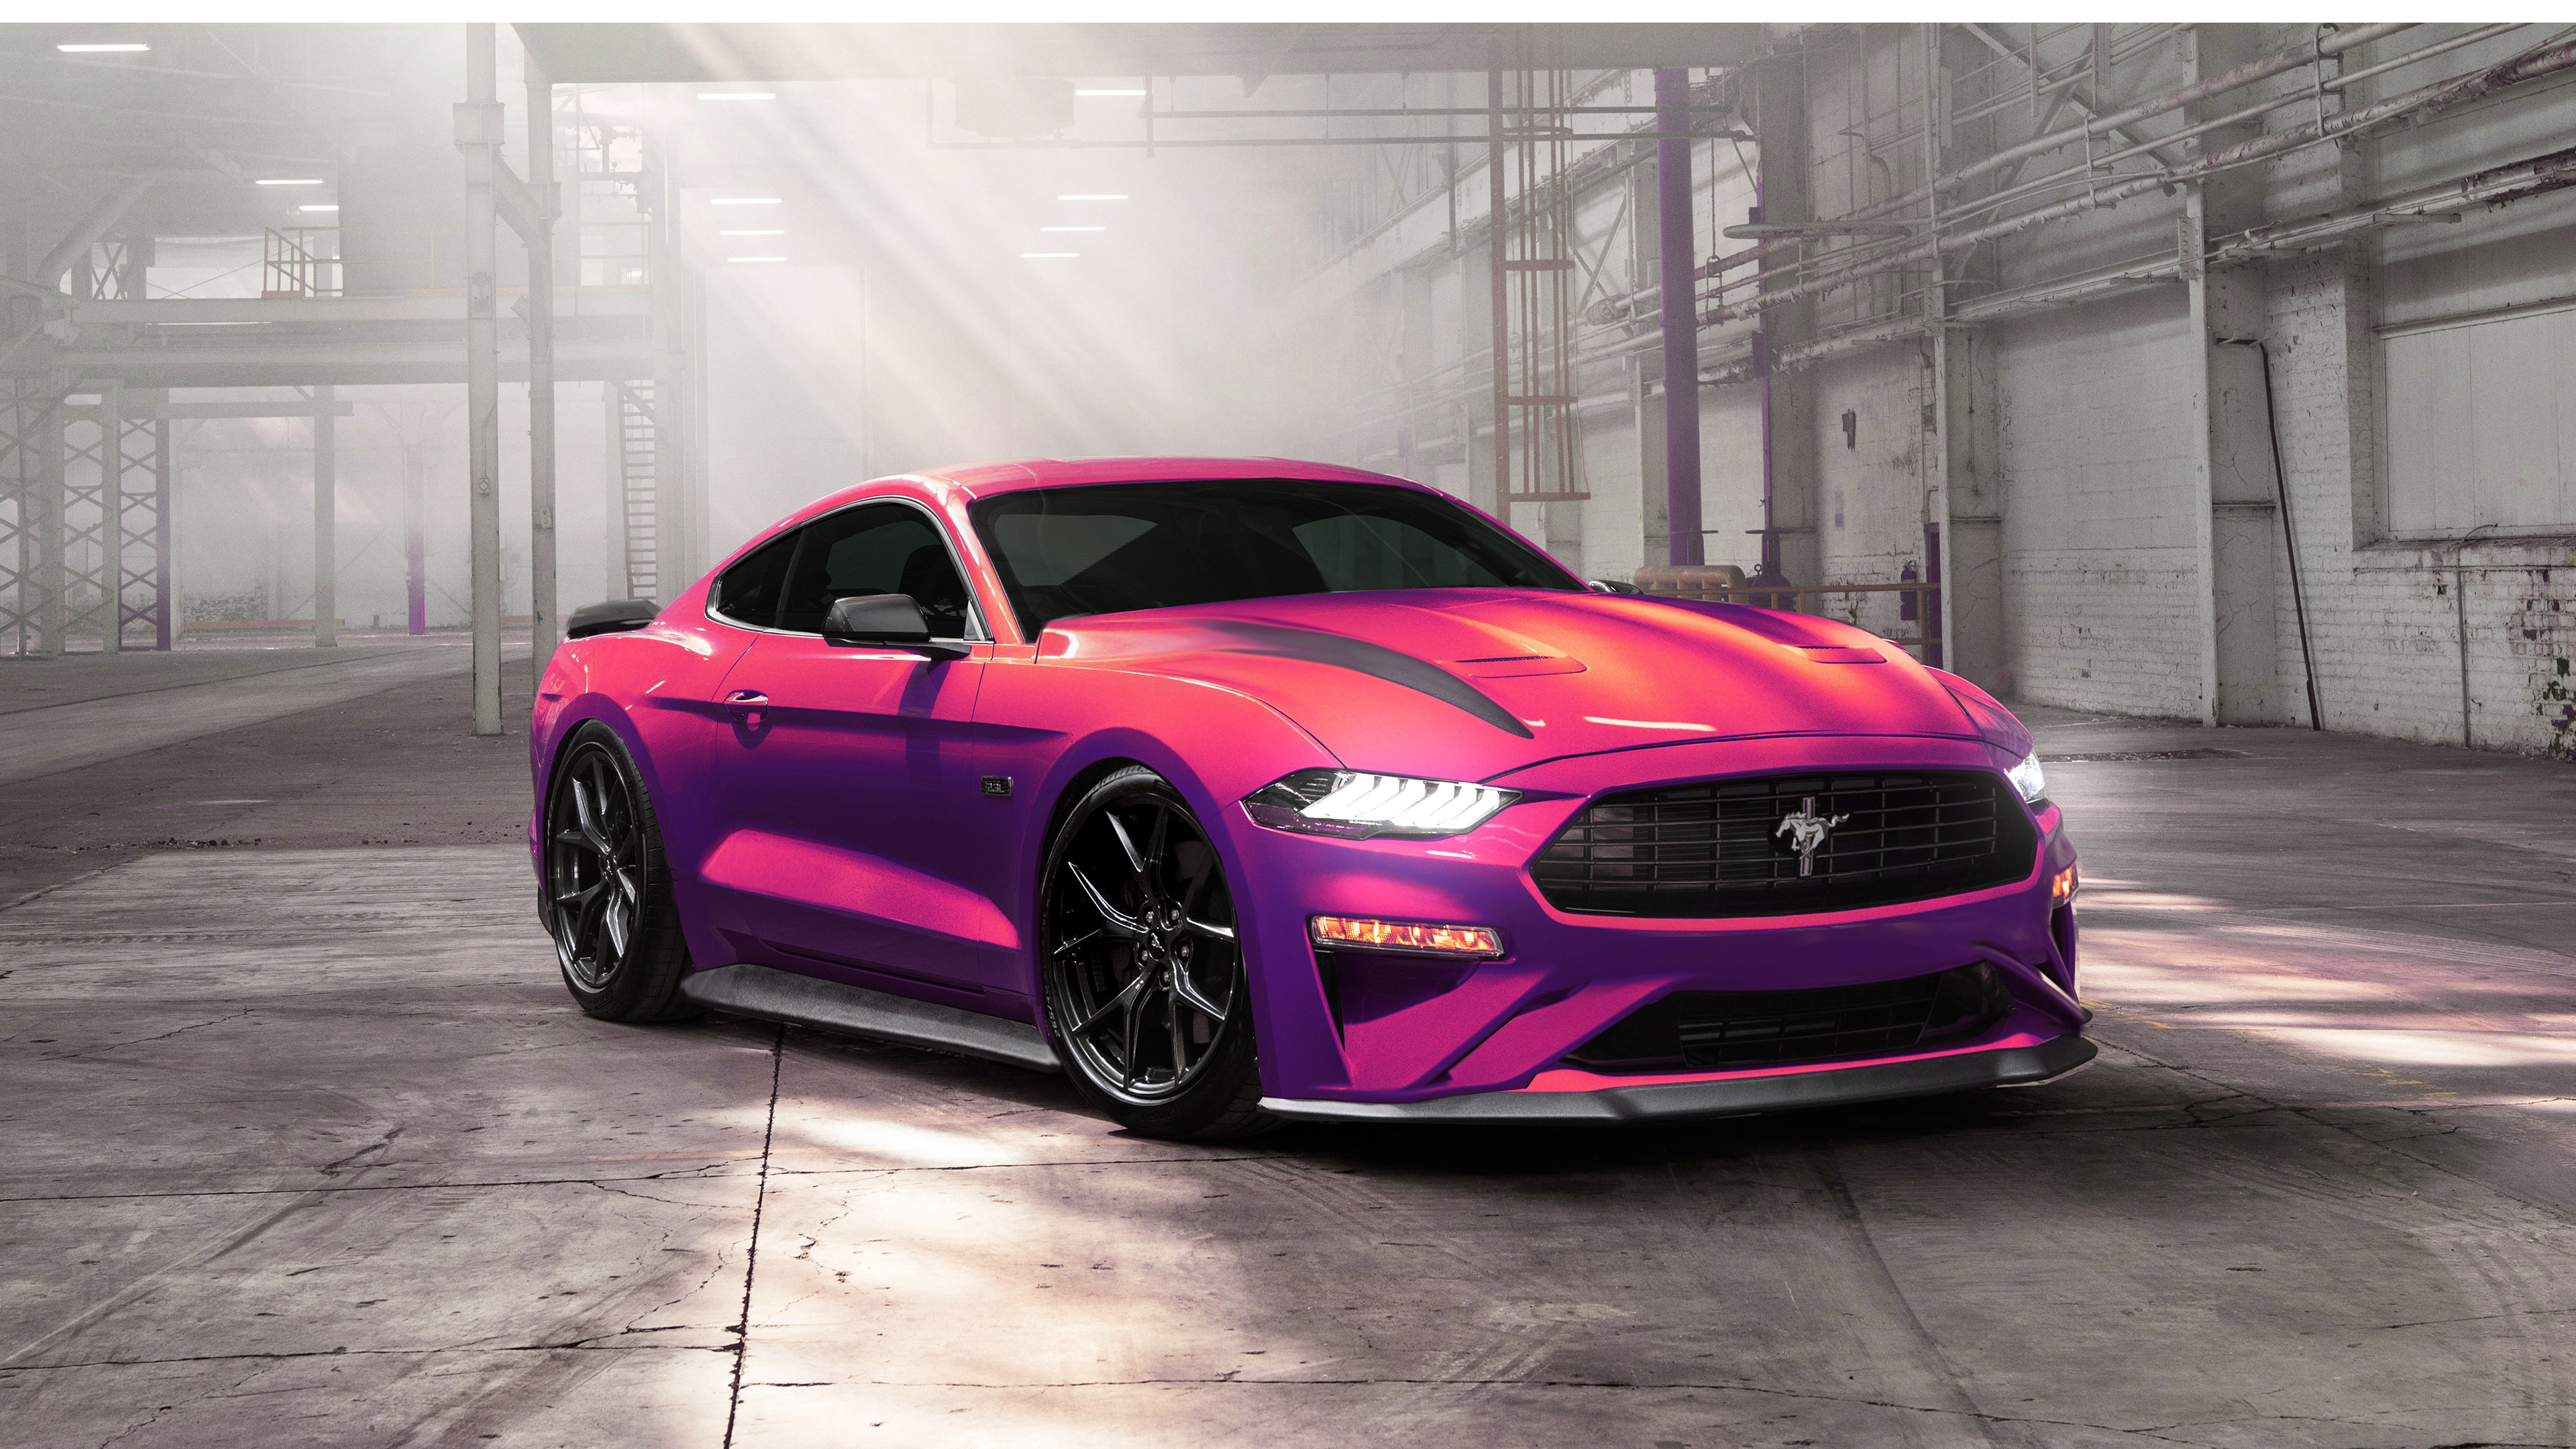 ford mustang 1569188502 - Ford Mustang - mustang wallpapers, hd-wallpapers, ford mustang wallpapers, cars wallpapers, behance wallpapers, 4k-wallpapers